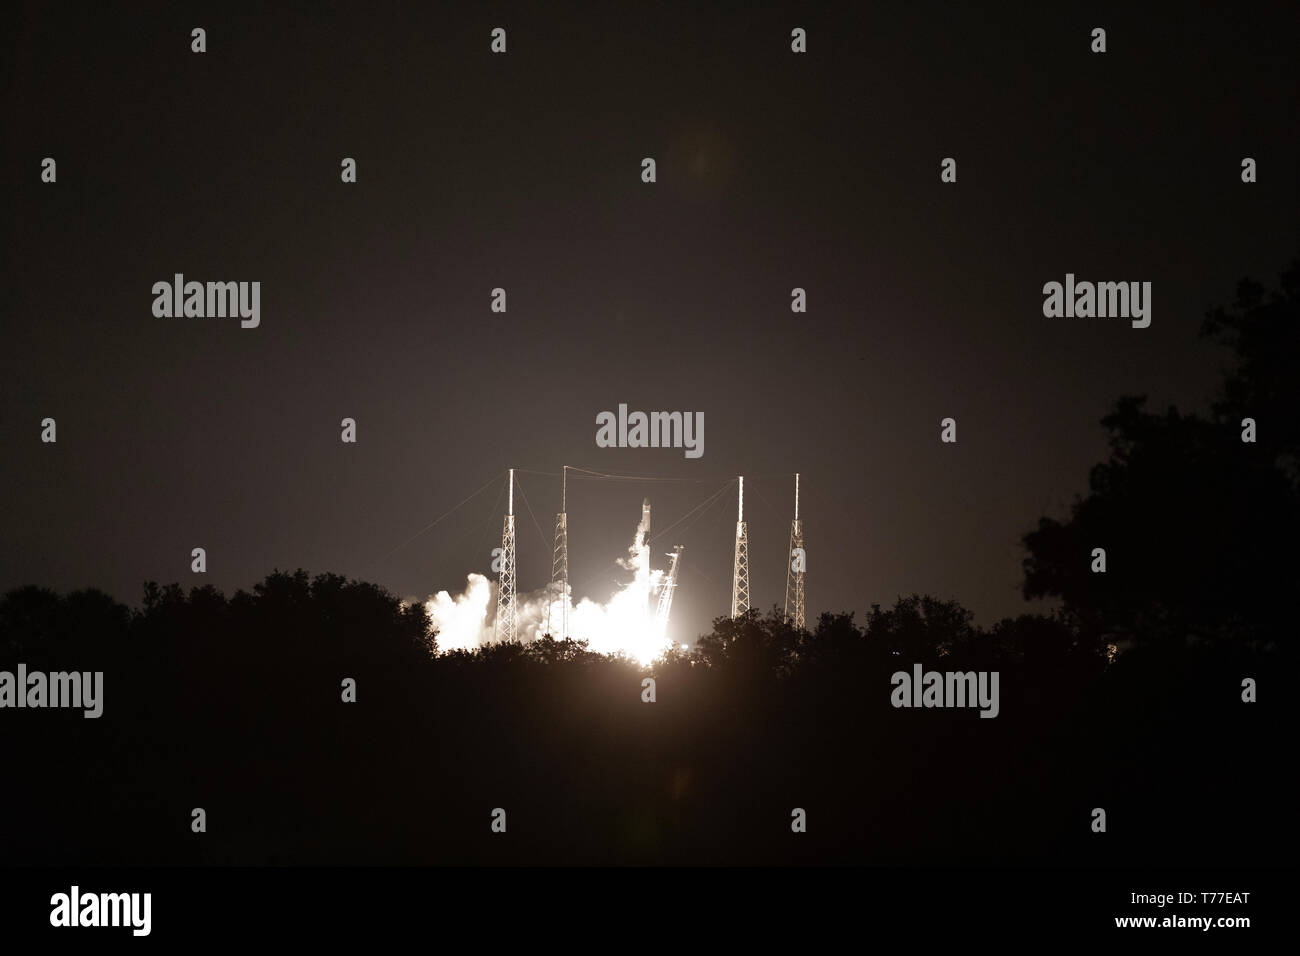 Florida, USA. 04th May, 2019. The SpaceX Falcon 9 rocket blasts off carrying the Dragon commercial cargo capsule on the CRS-17 mission to the International Space Station from the Kennedy Space Center May 4, 2019 in Cape Canaveral, Florida. The Dragon will deliver about 5,500 pounds of scientific instruments, crew supplies and hardware to the orbital laboratory and its crew. Credit: Planetpix/Alamy Live News Stock Photo